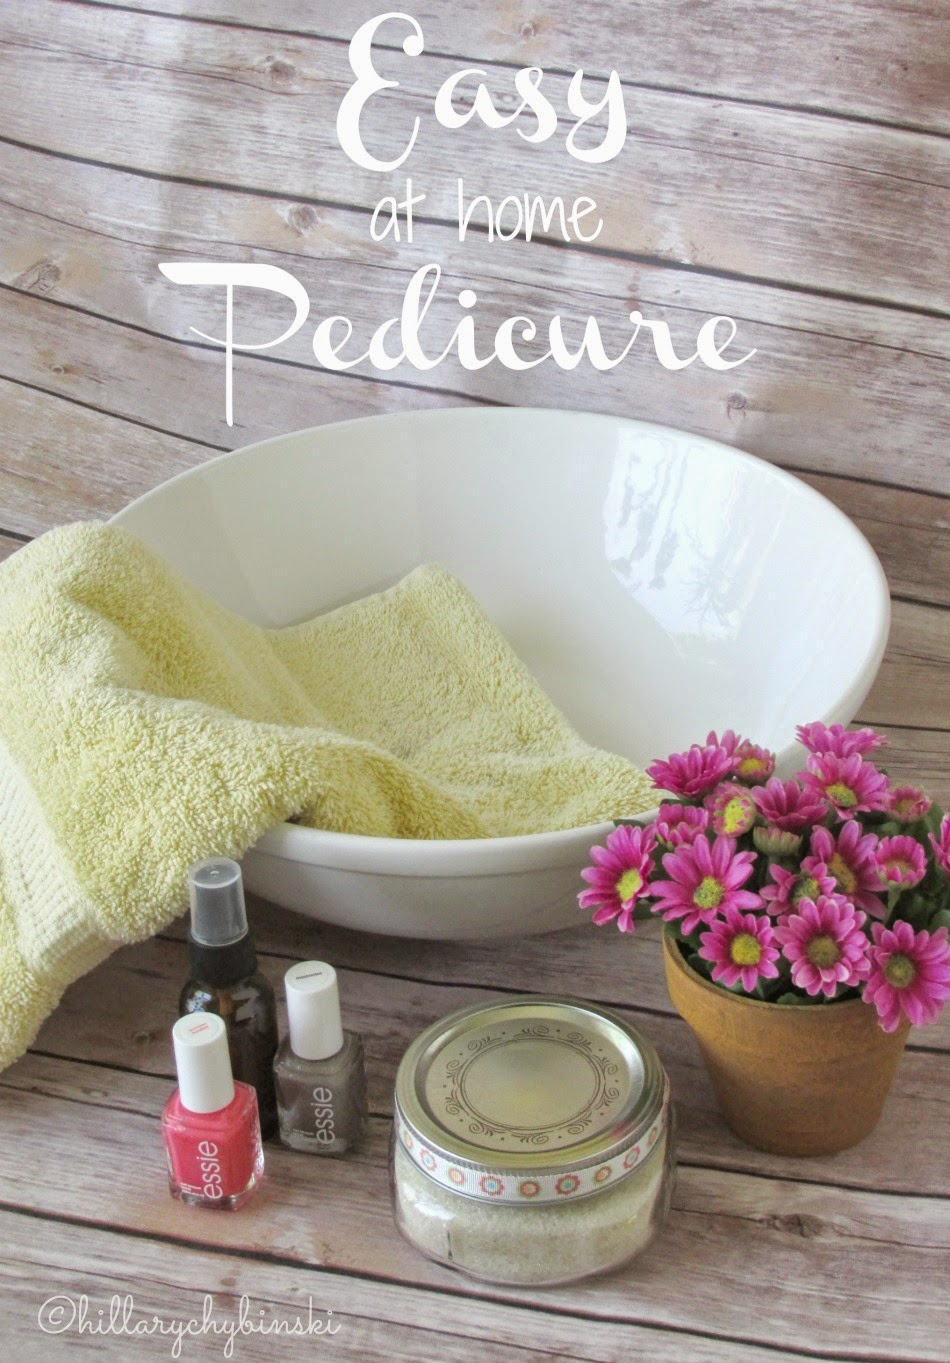 Hillary chybinski how to give yourself an easy diy pedicure easy steps for giving yourself an easy diy pedicure at home use supplies you have solutioingenieria Gallery